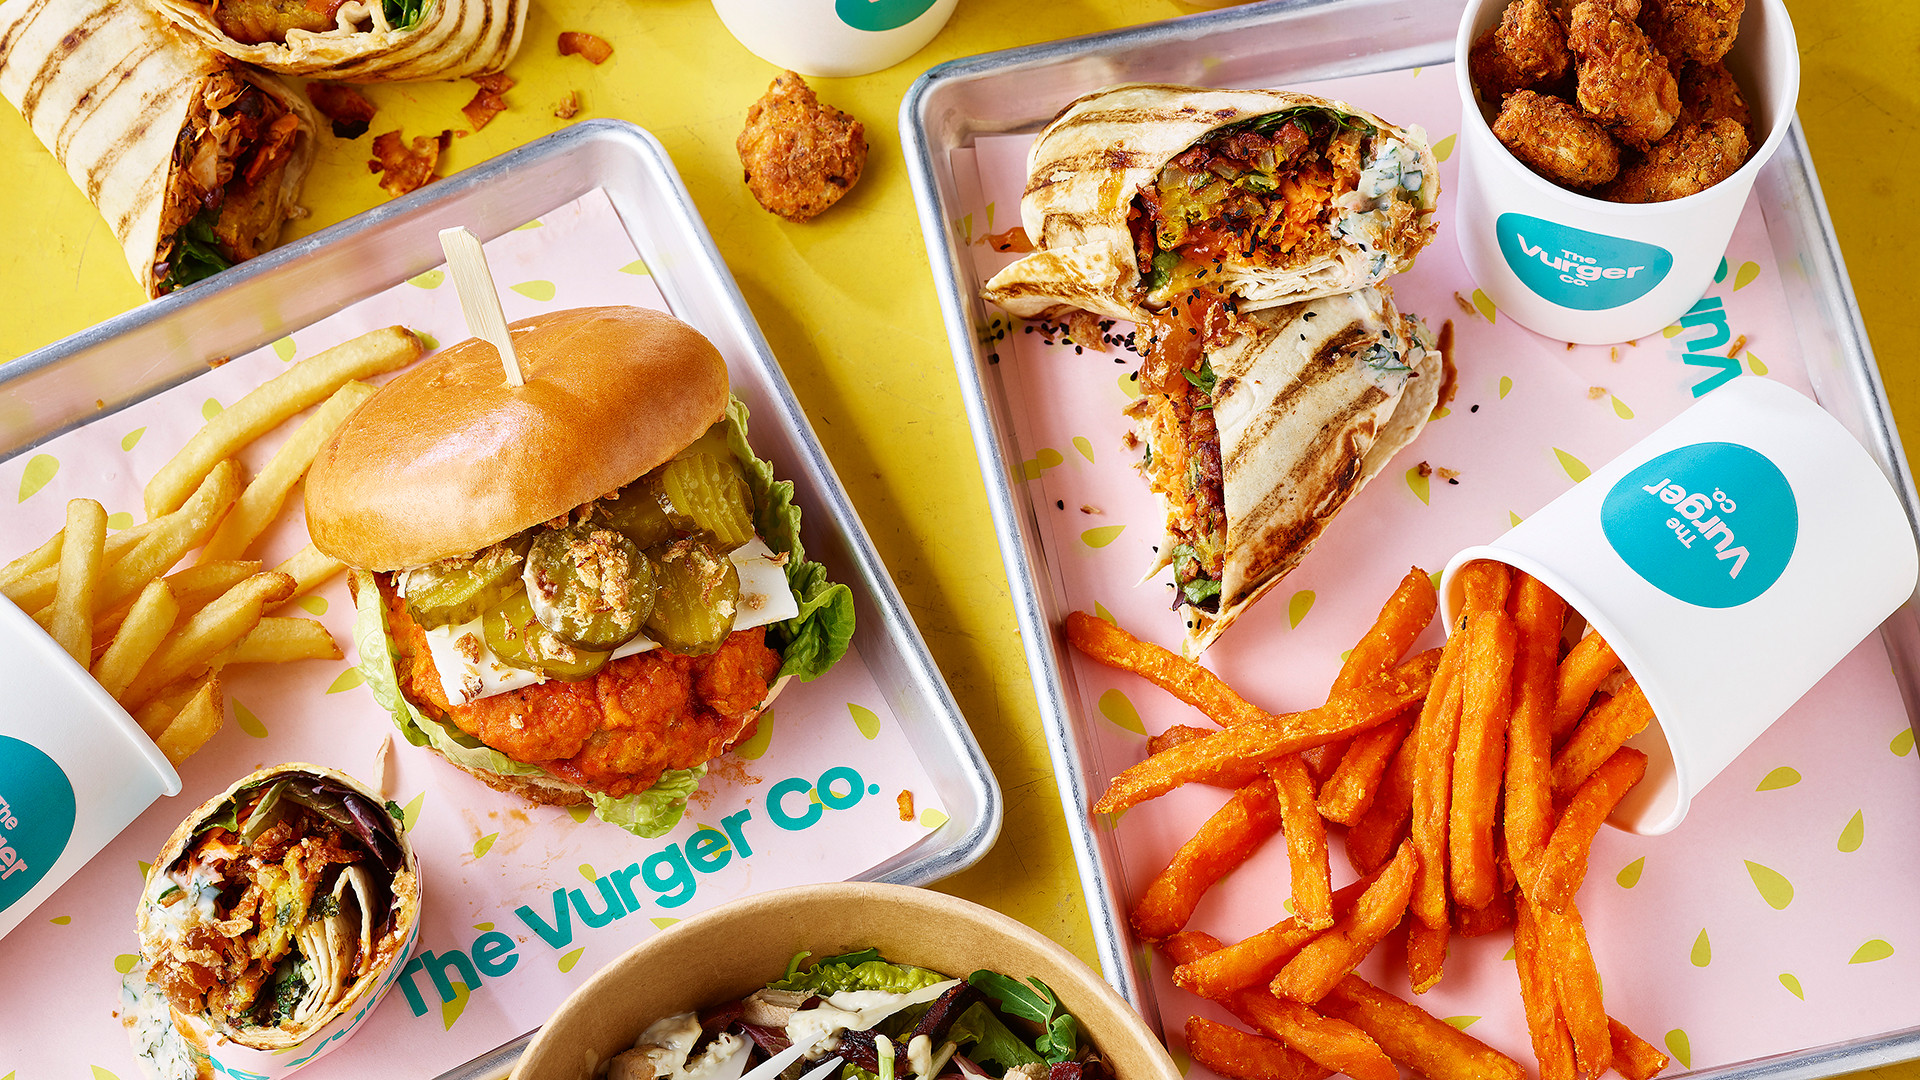 Best plant-based burgers in London – The Vurger Co